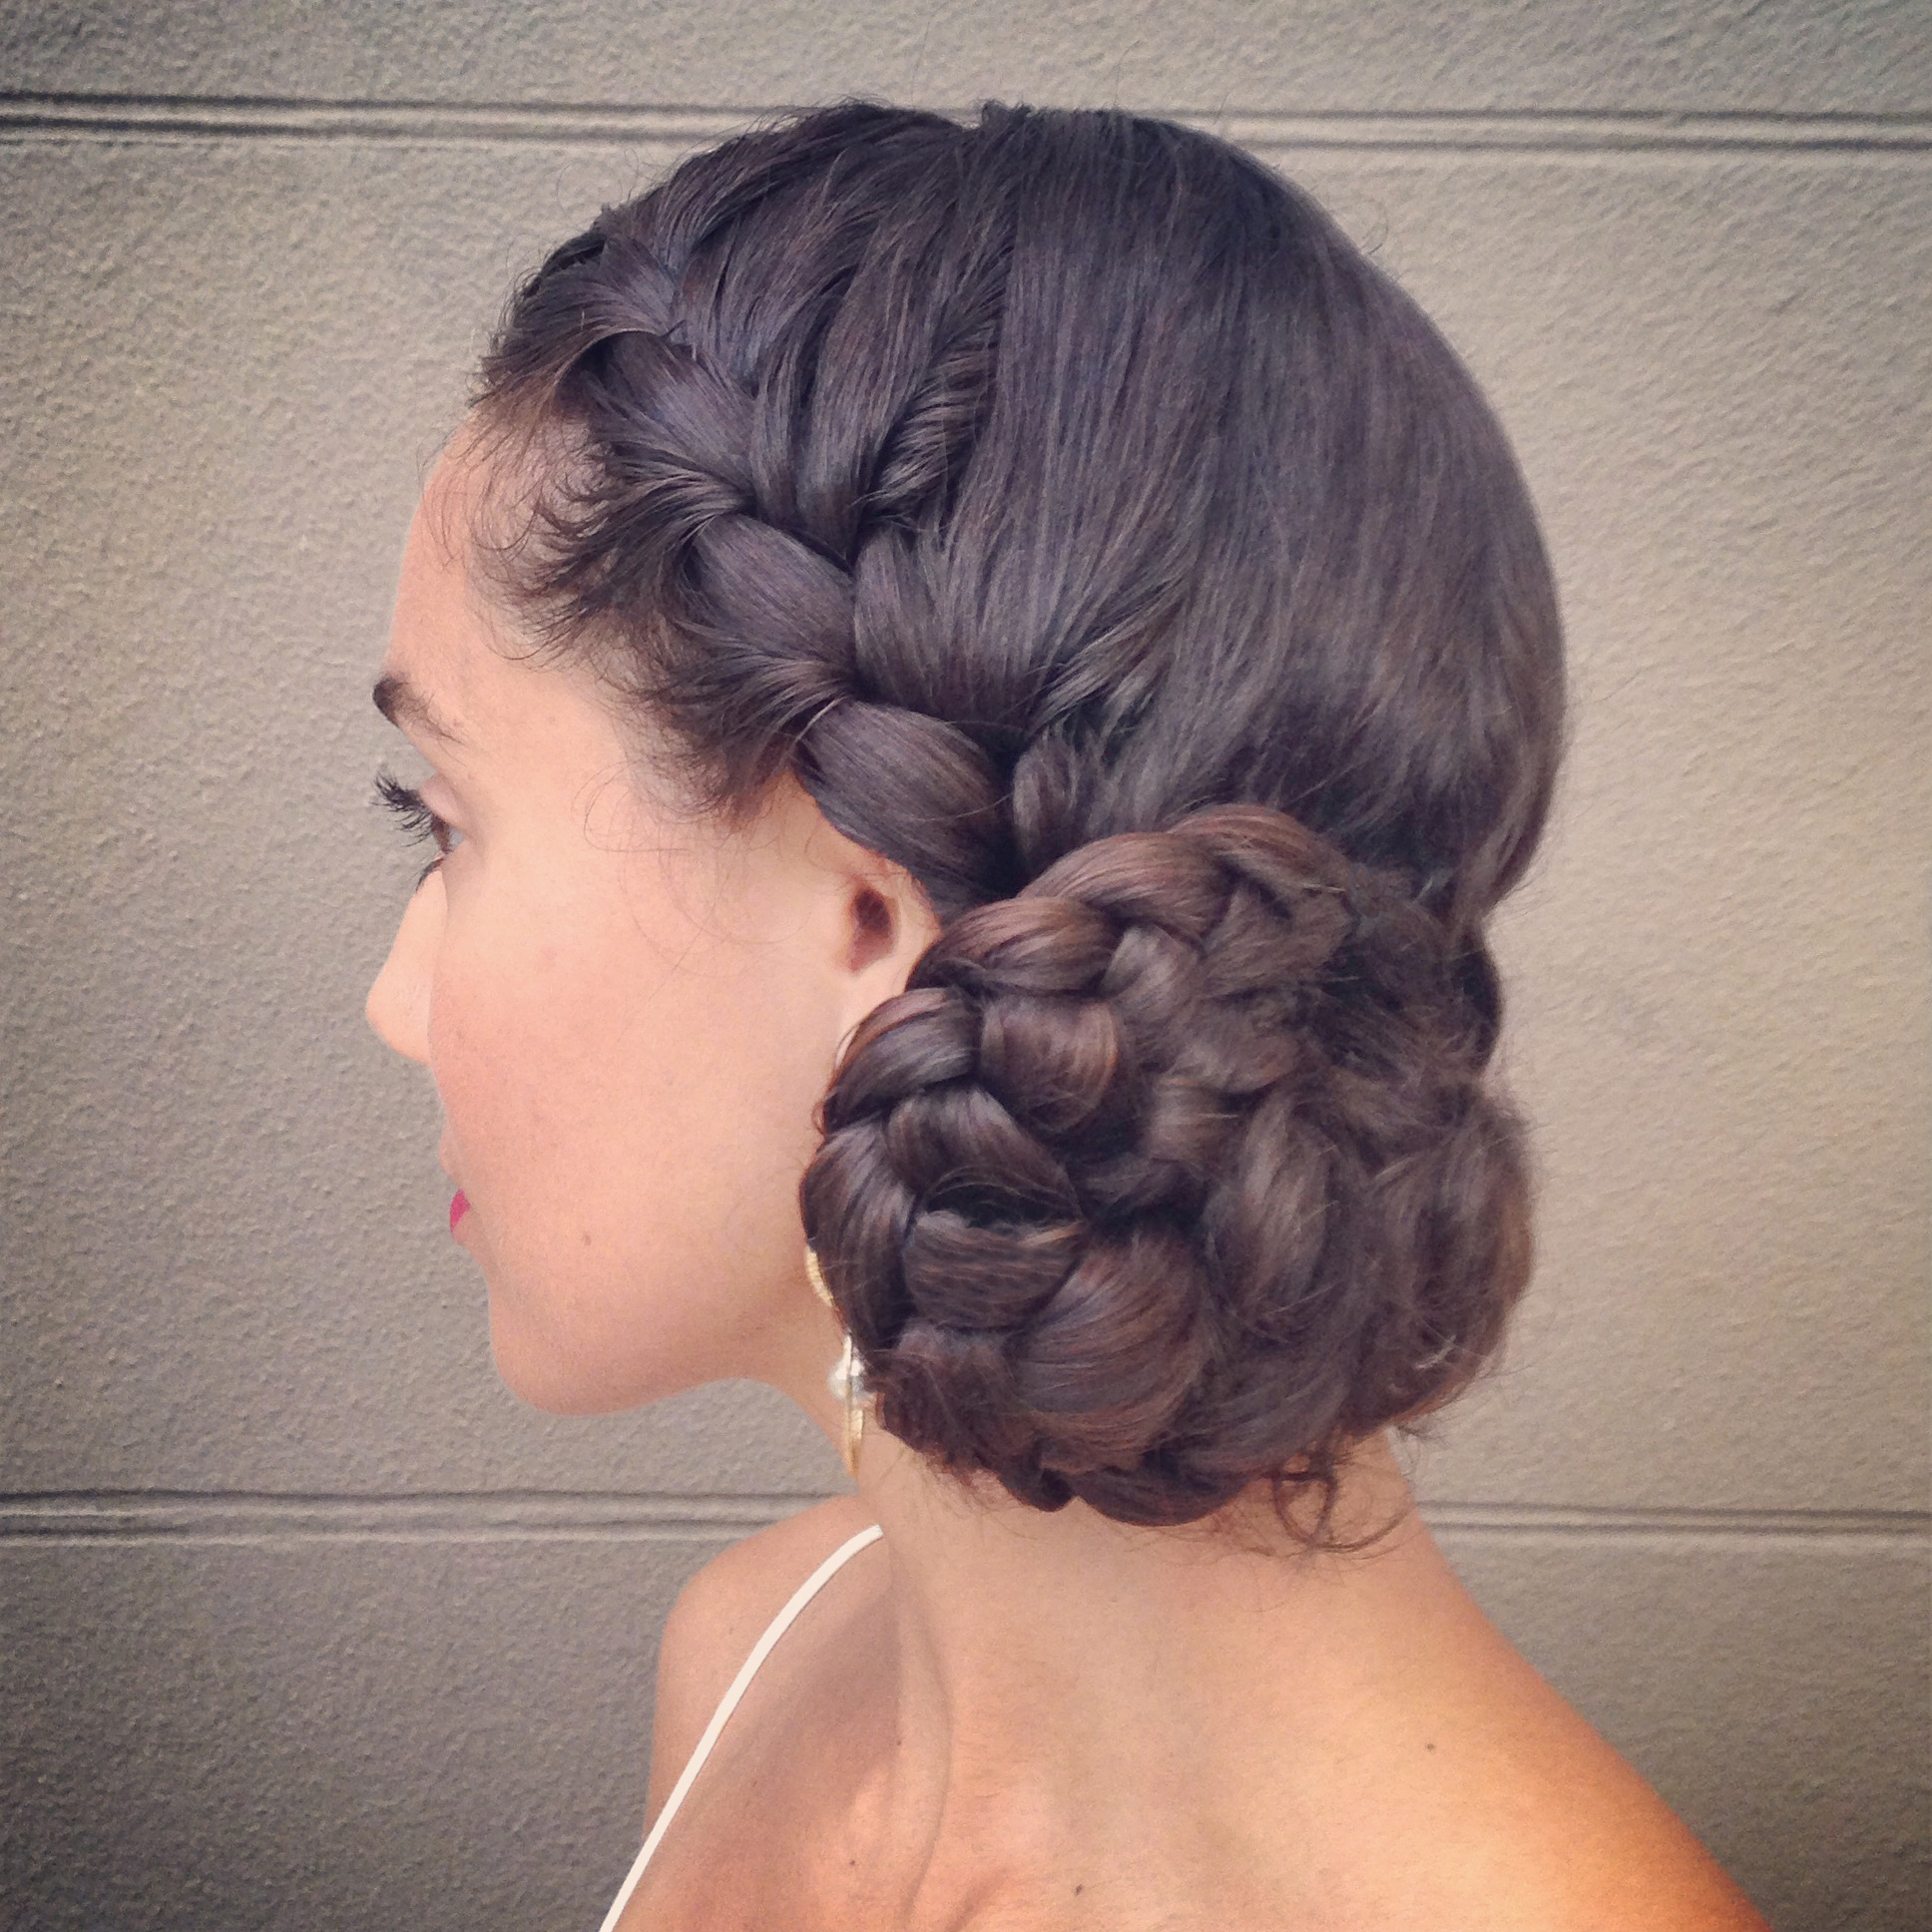 Tremendous Bun Hairstyle Curl On A Mission Hairstyle Inspiration Daily Dogsangcom